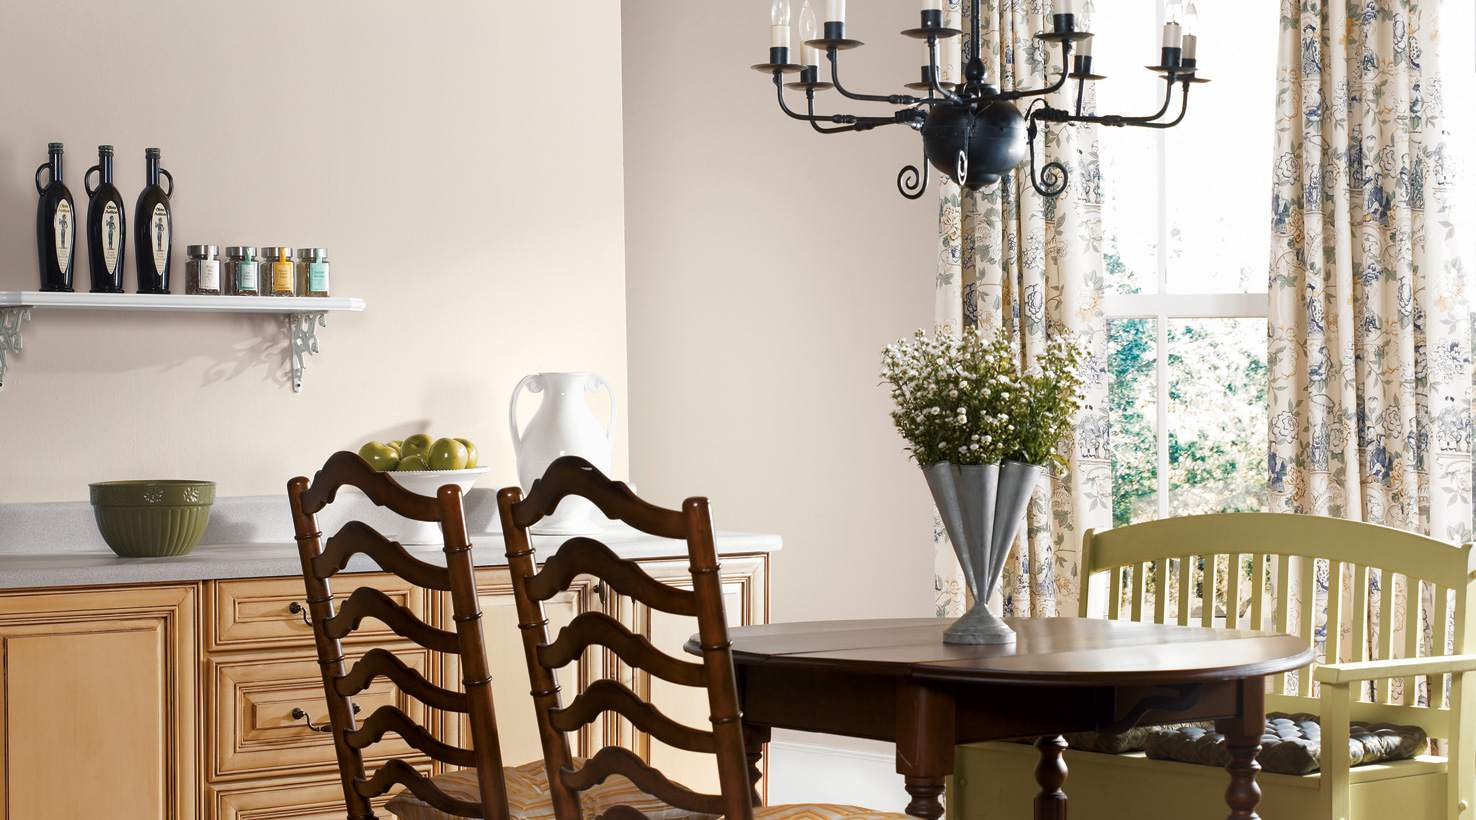 top 7 cool paint colors from sherwin williams on paint colors by sherwin williams id=30211